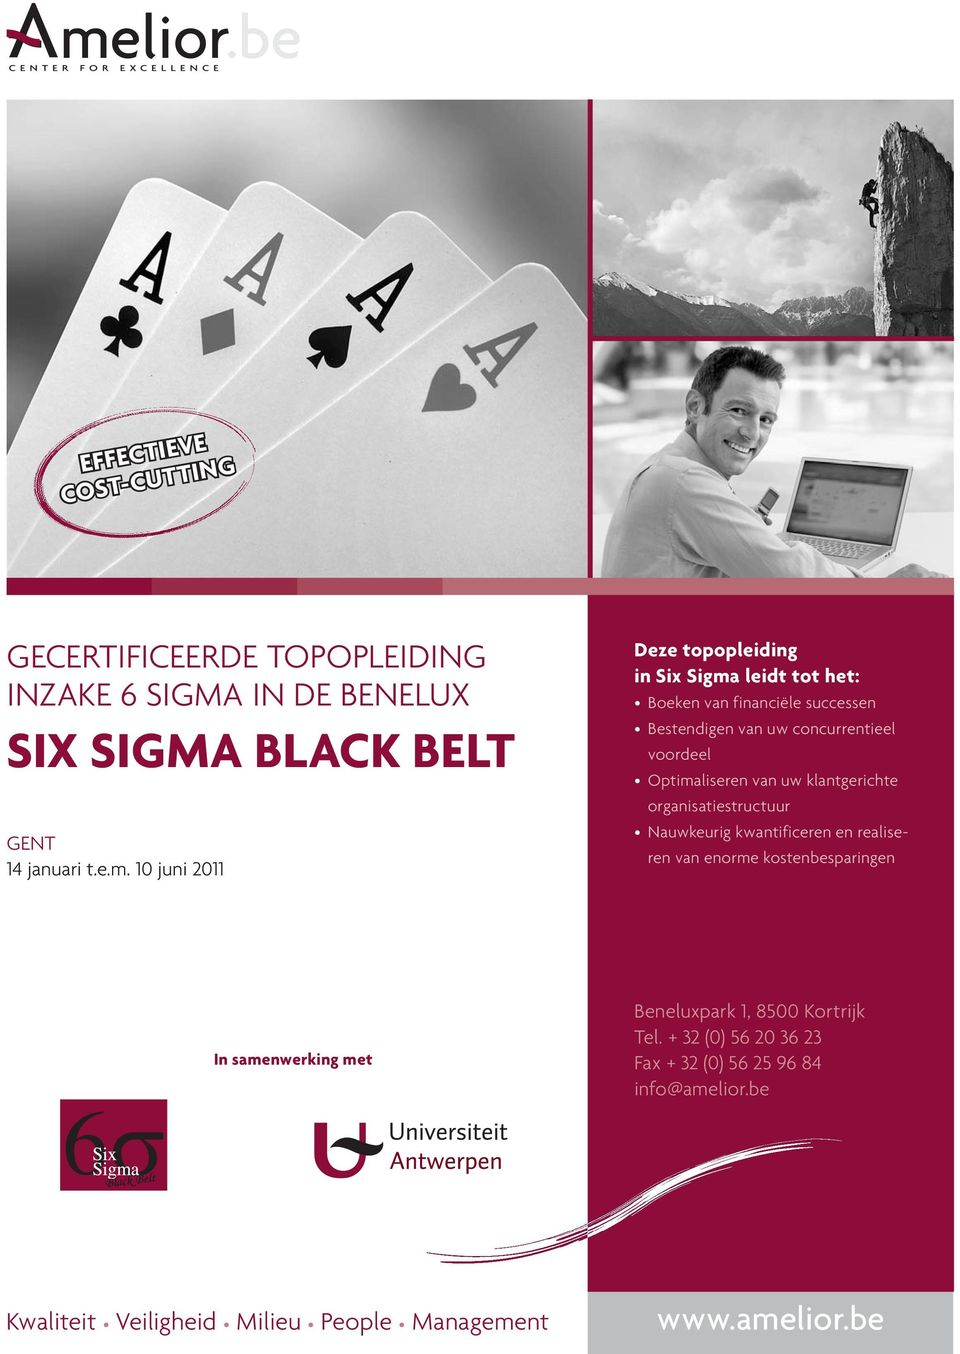 Black Belt gent 14 januari t.e.m.